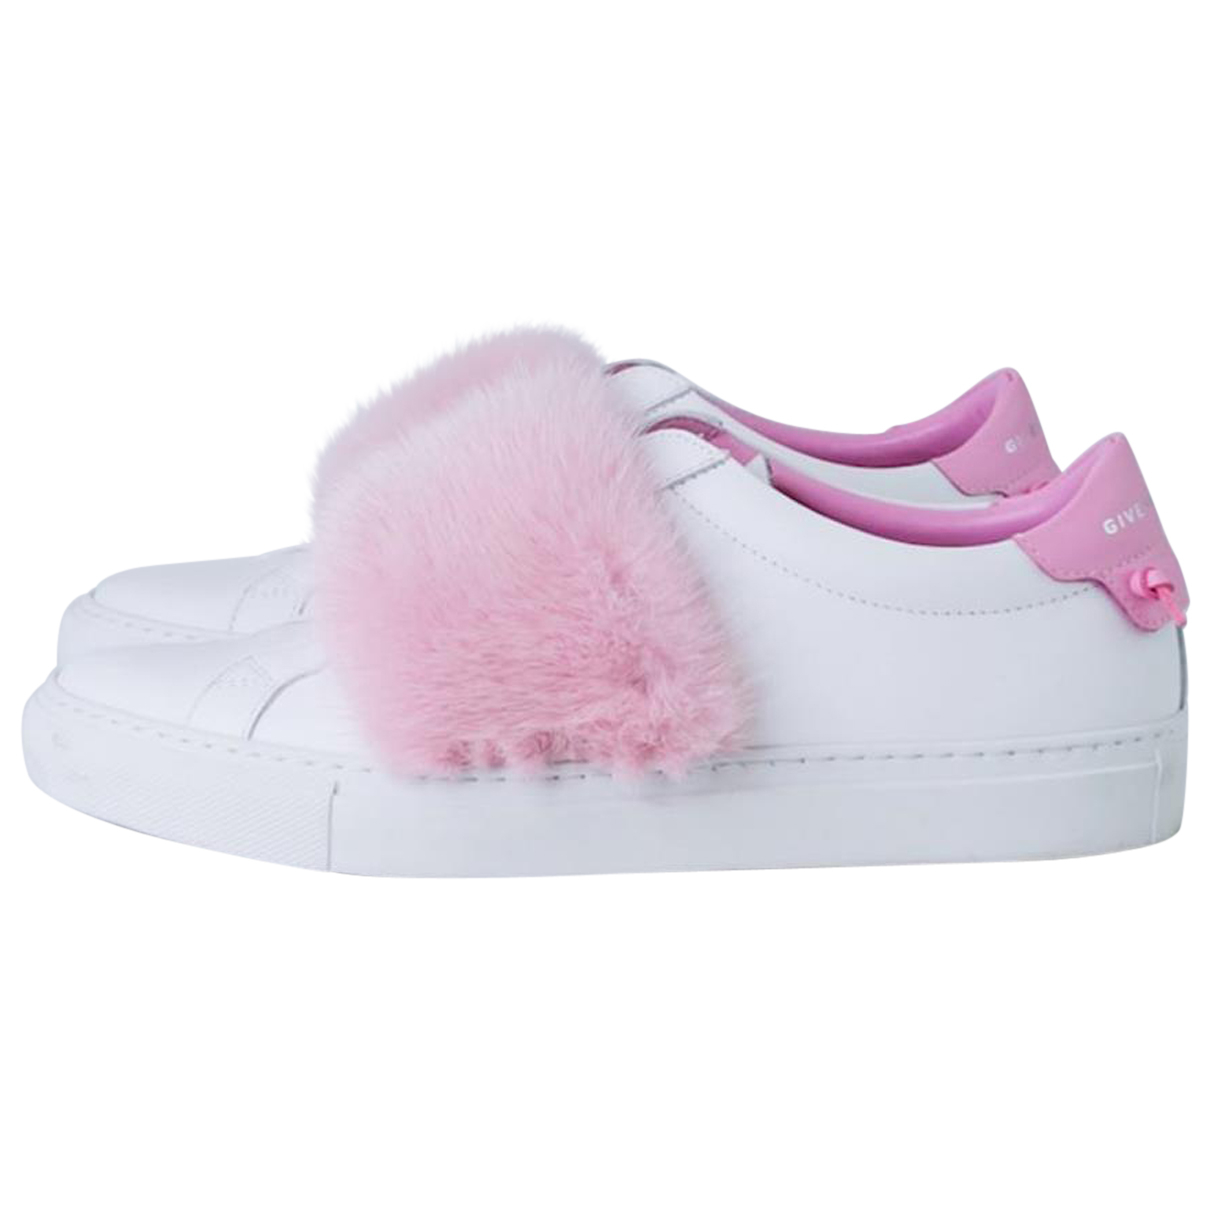 Givenchy N White Leather Trainers for Women 39 EU